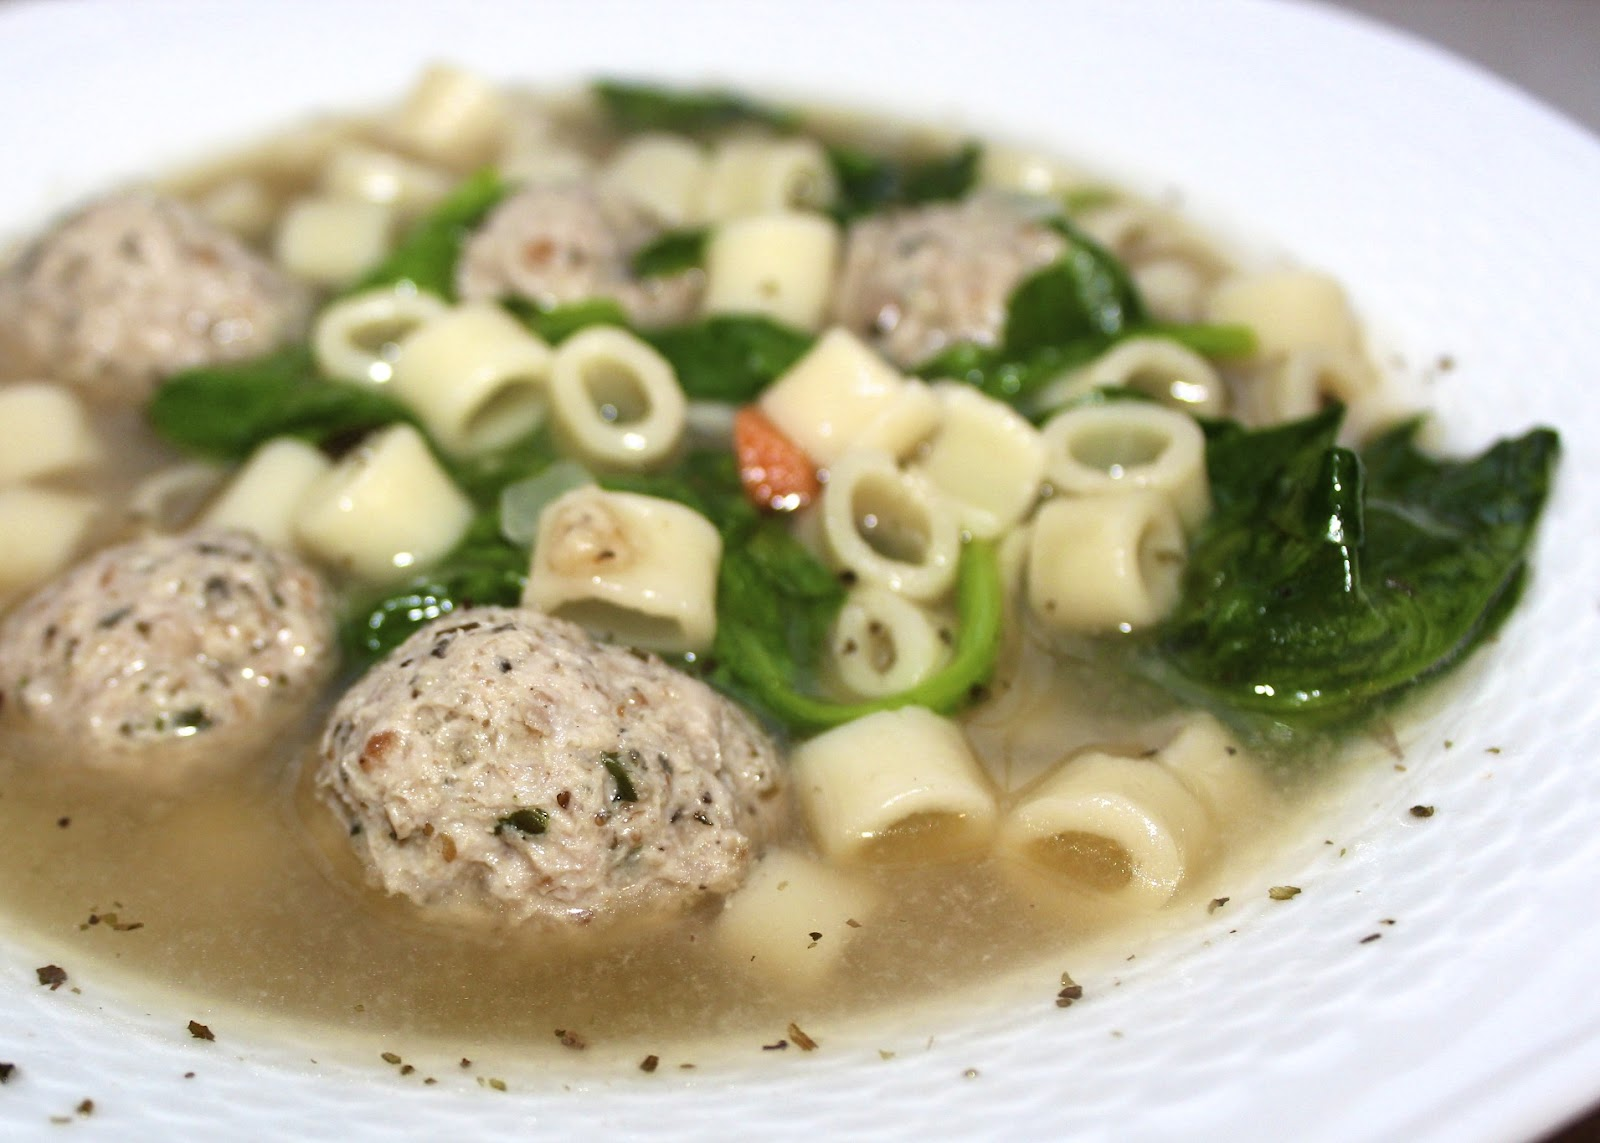 Saturday Lunch - Turkey Meatball and Spinach Soup